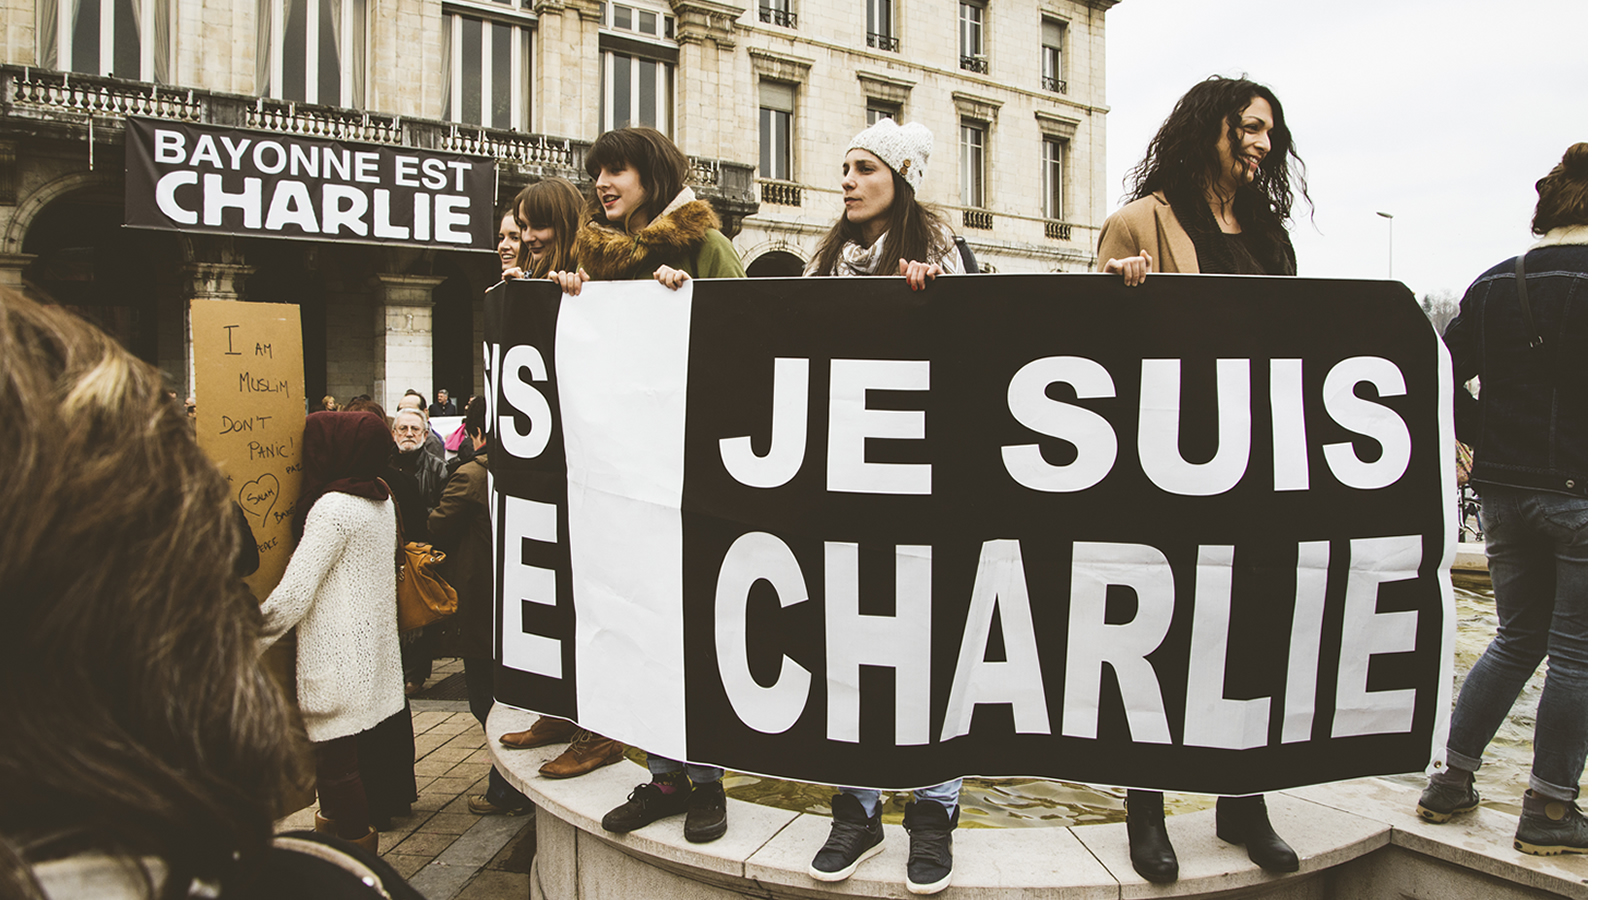 Protesters hold up Je Suis Charlie banner after Charlie Hebdo terrorist attack.